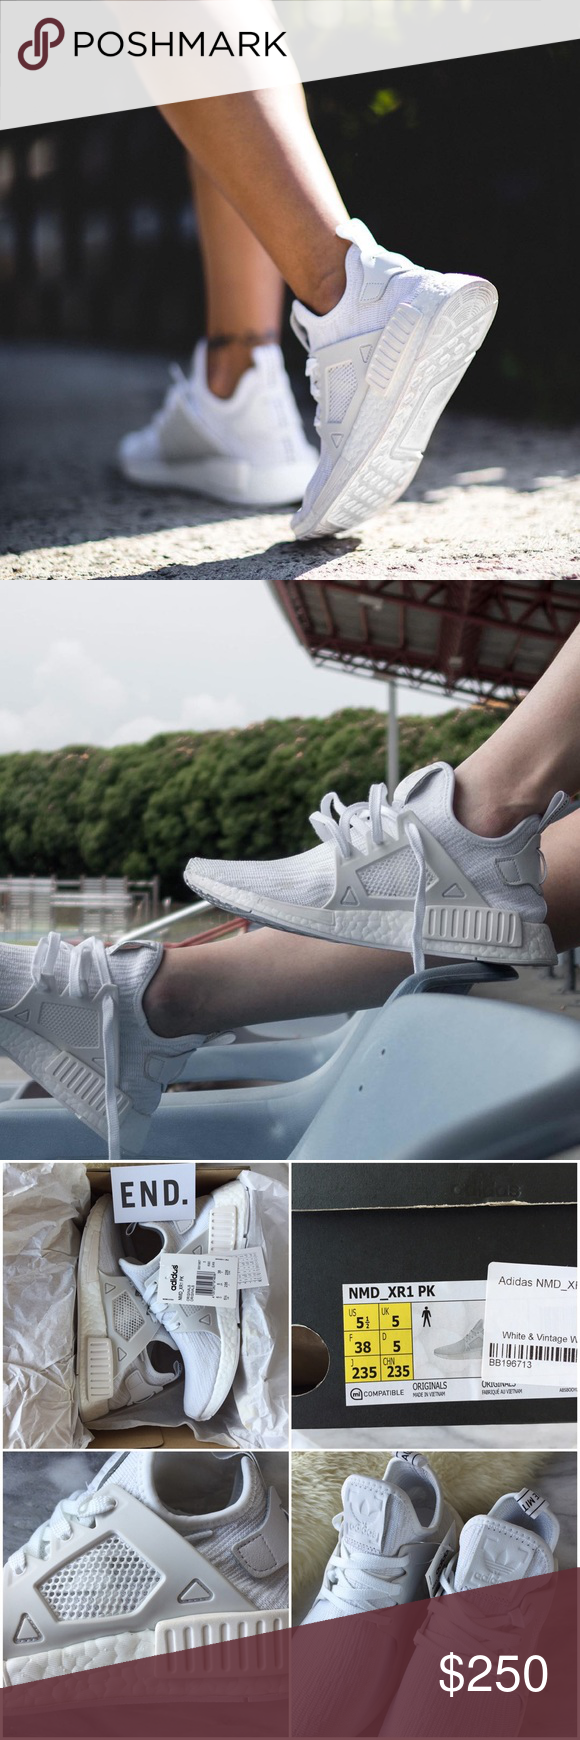 e062b6ce241b Adidas Triple White NMD XR1 Sneakers •Triple white NMD XR1 Sneakers. •Men s  size